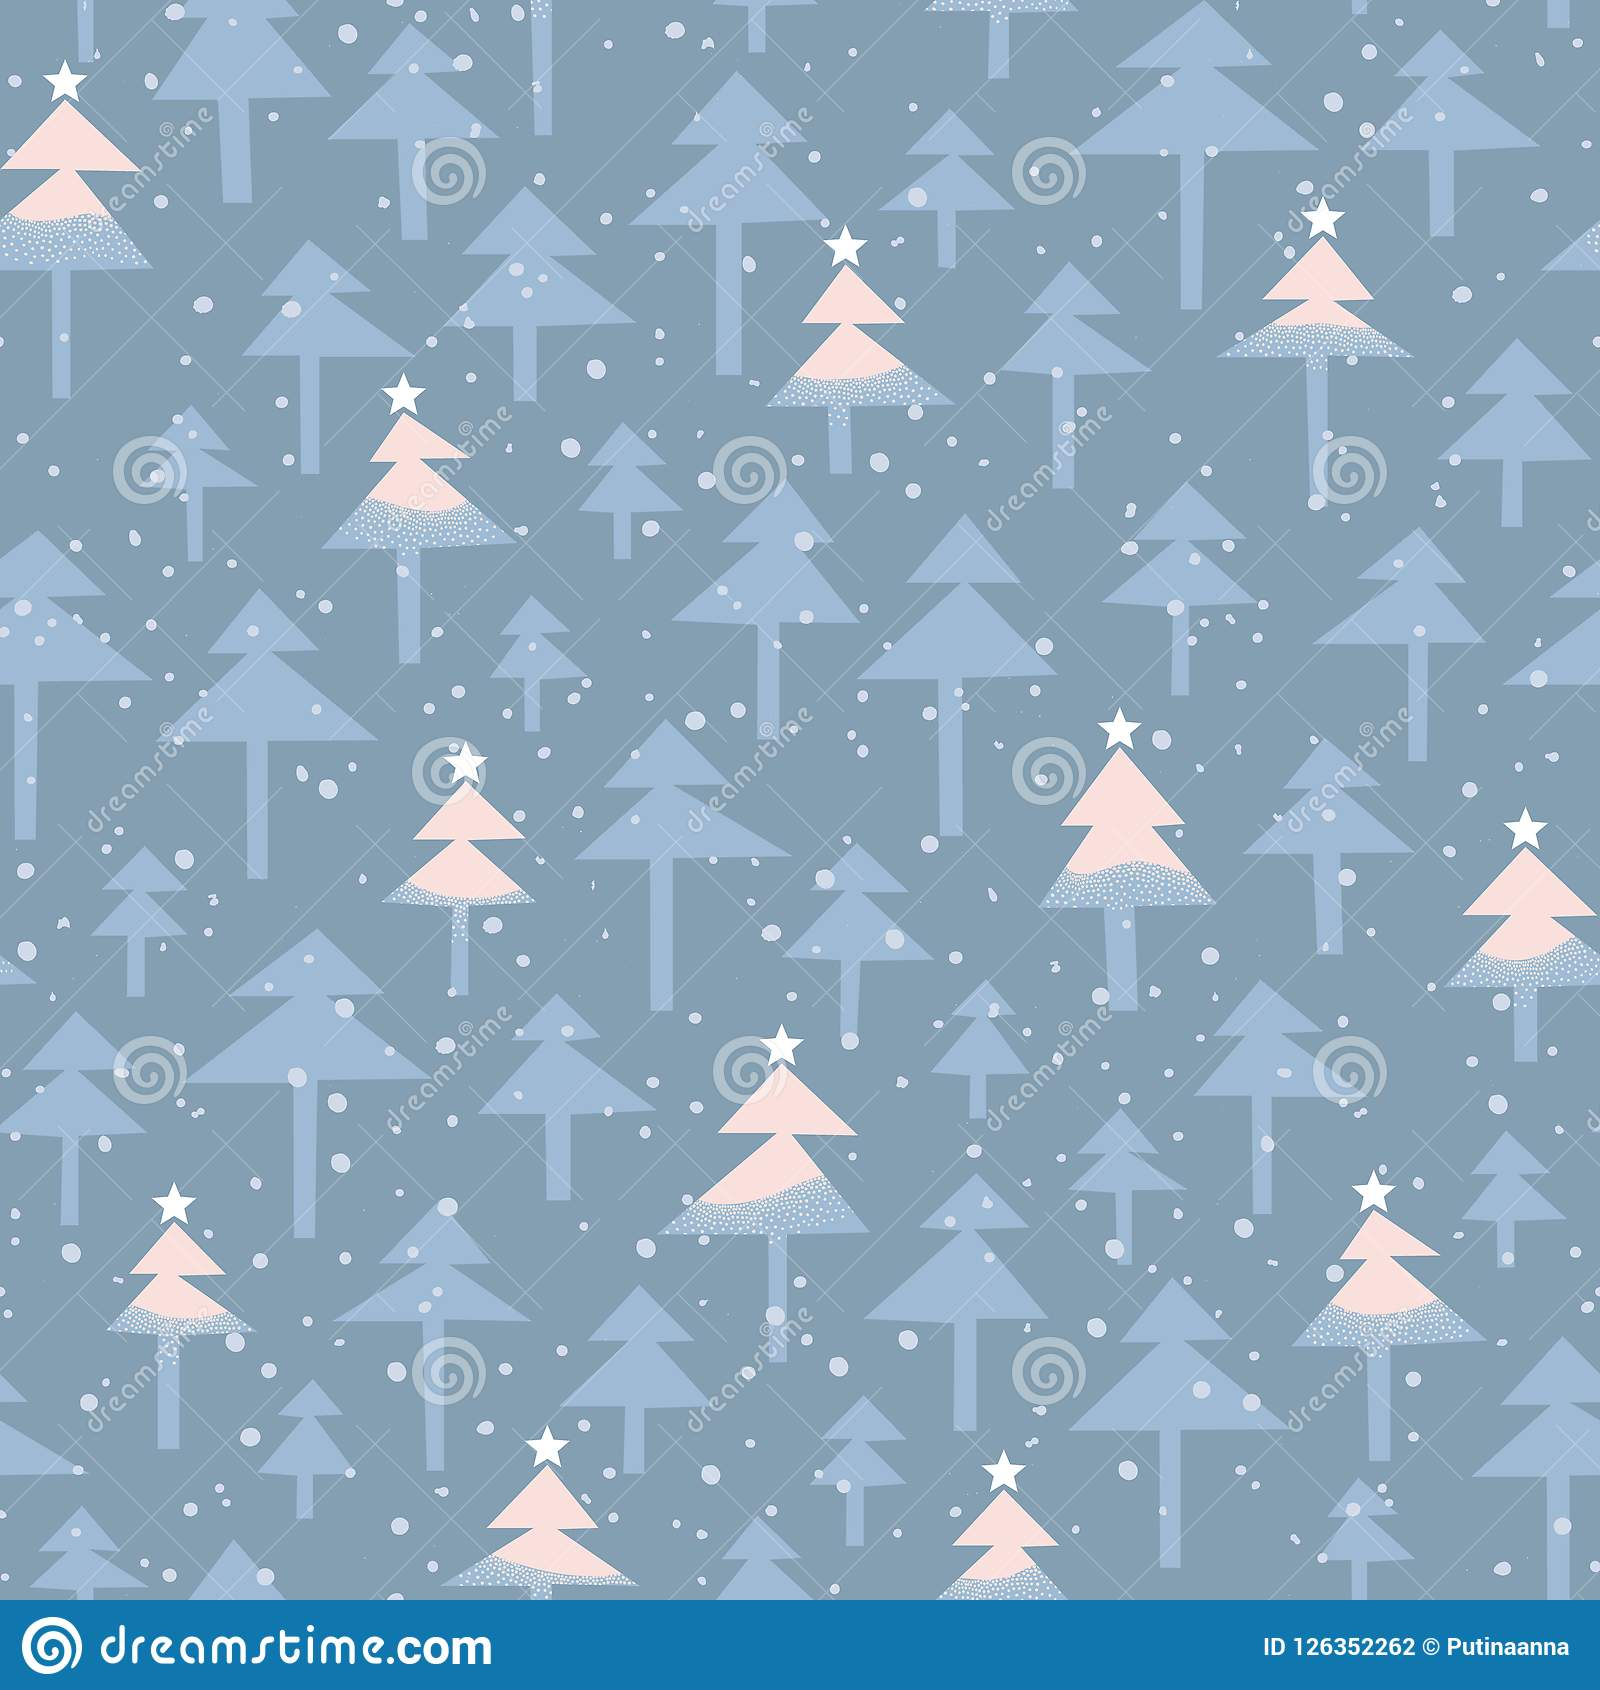 Cute Trendy Abstract Christmas Trees Stars Vector Seamless Pattern